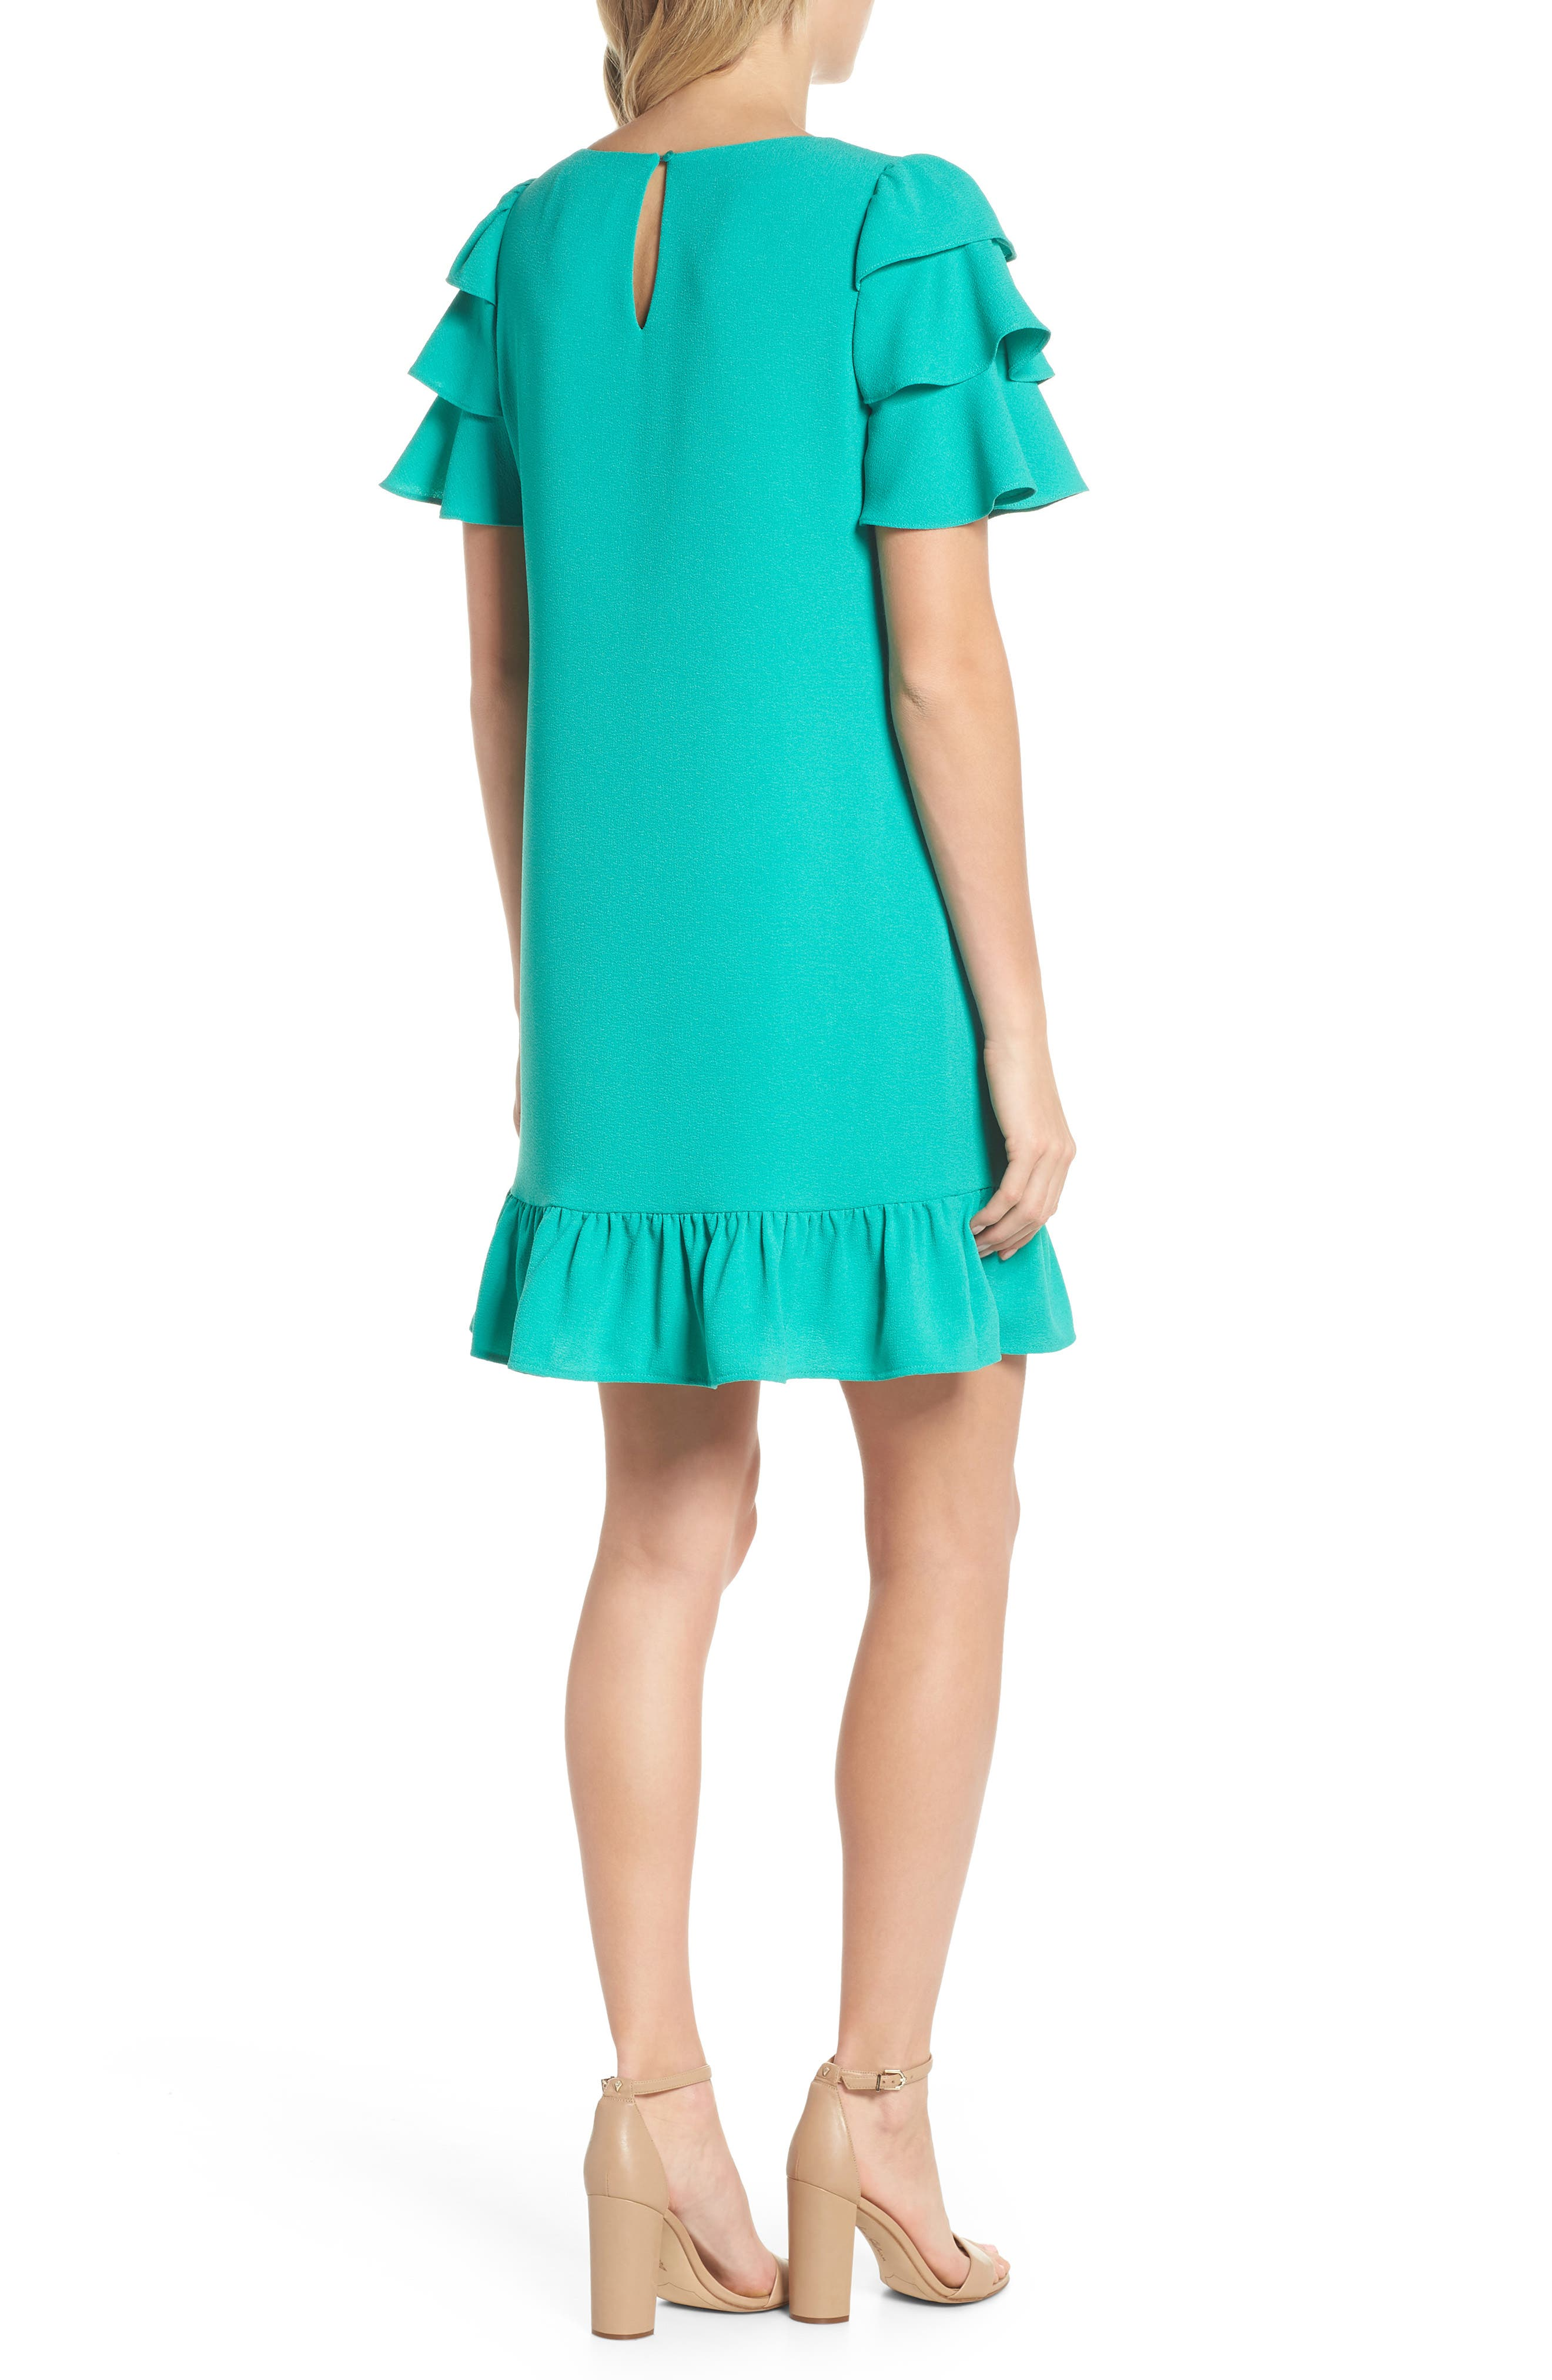 Tiered Ruffle Shift Dress,                             Alternate thumbnail 2, color,                             320